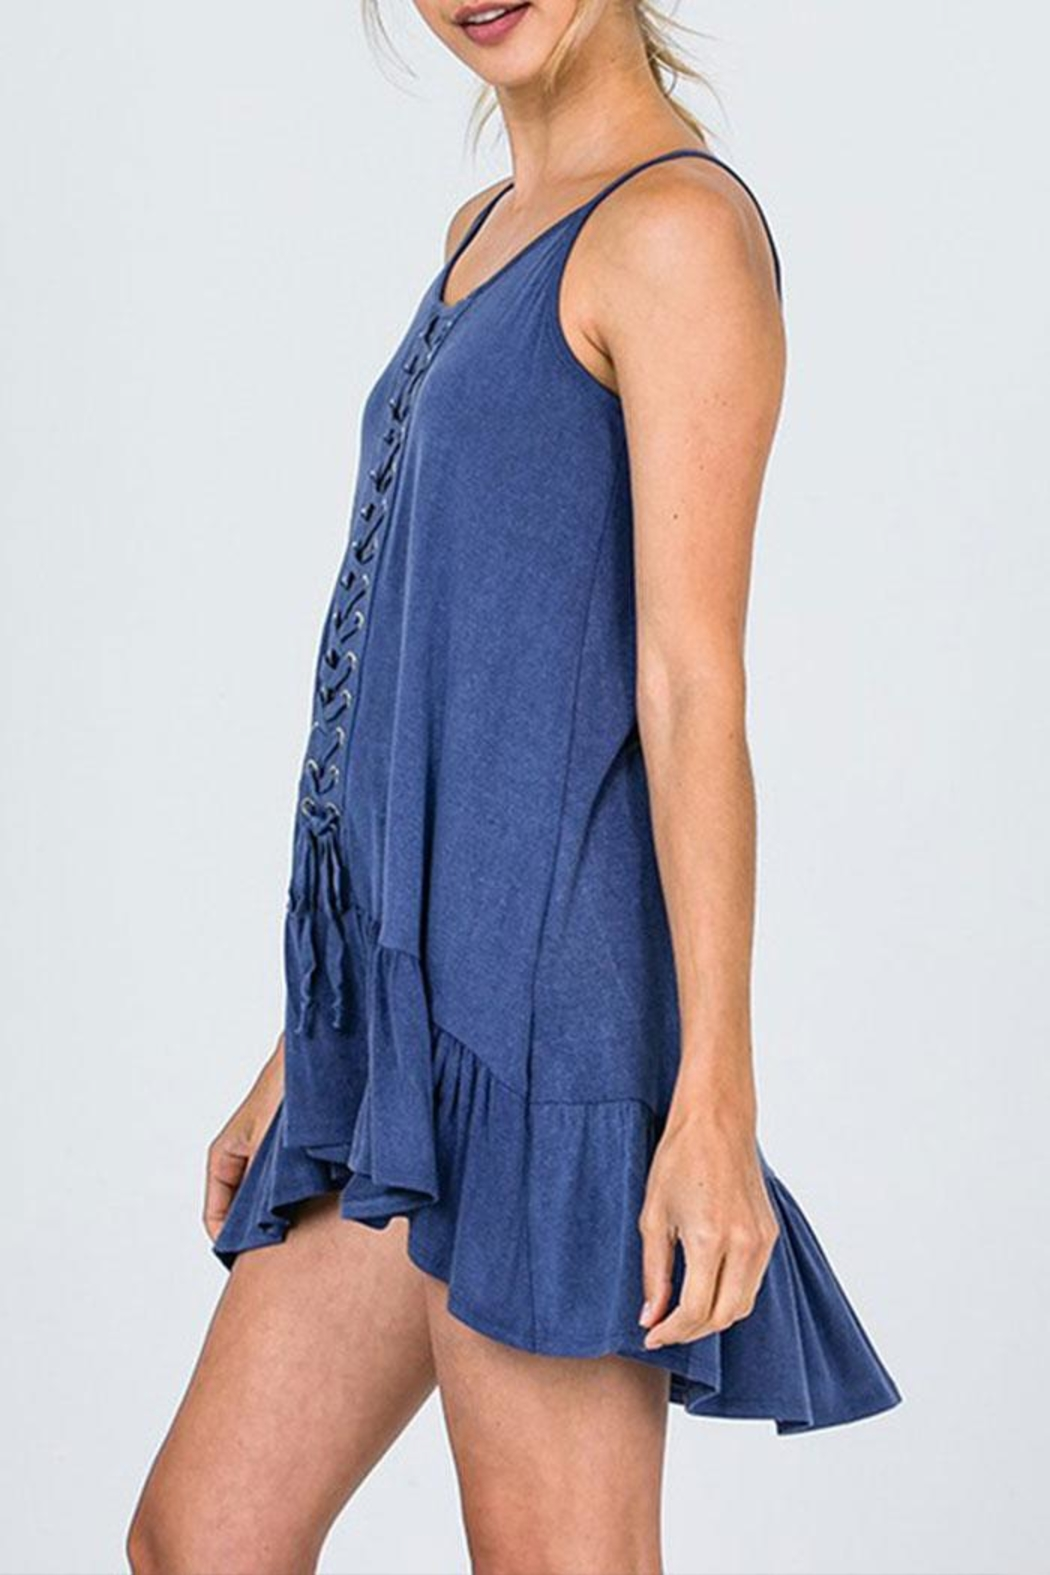 CY Fashion Lace Detail Tunic-Top - Side Cropped Image